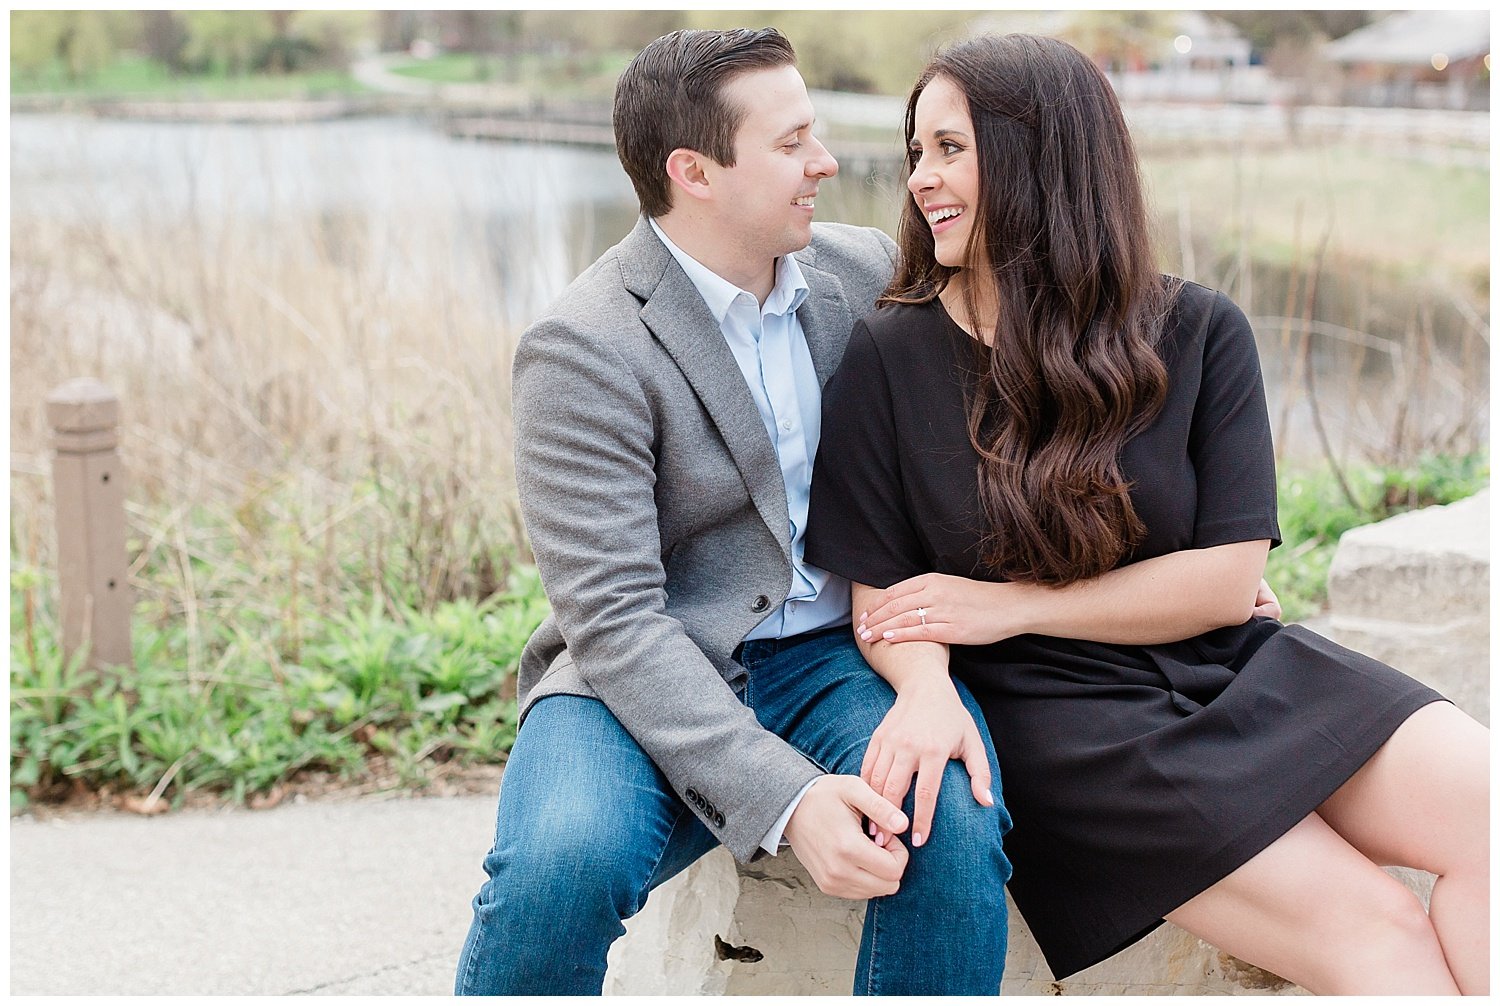 classic-downtown-chicago-engagement-session-kristen-cloyd-photography_0005.jpg